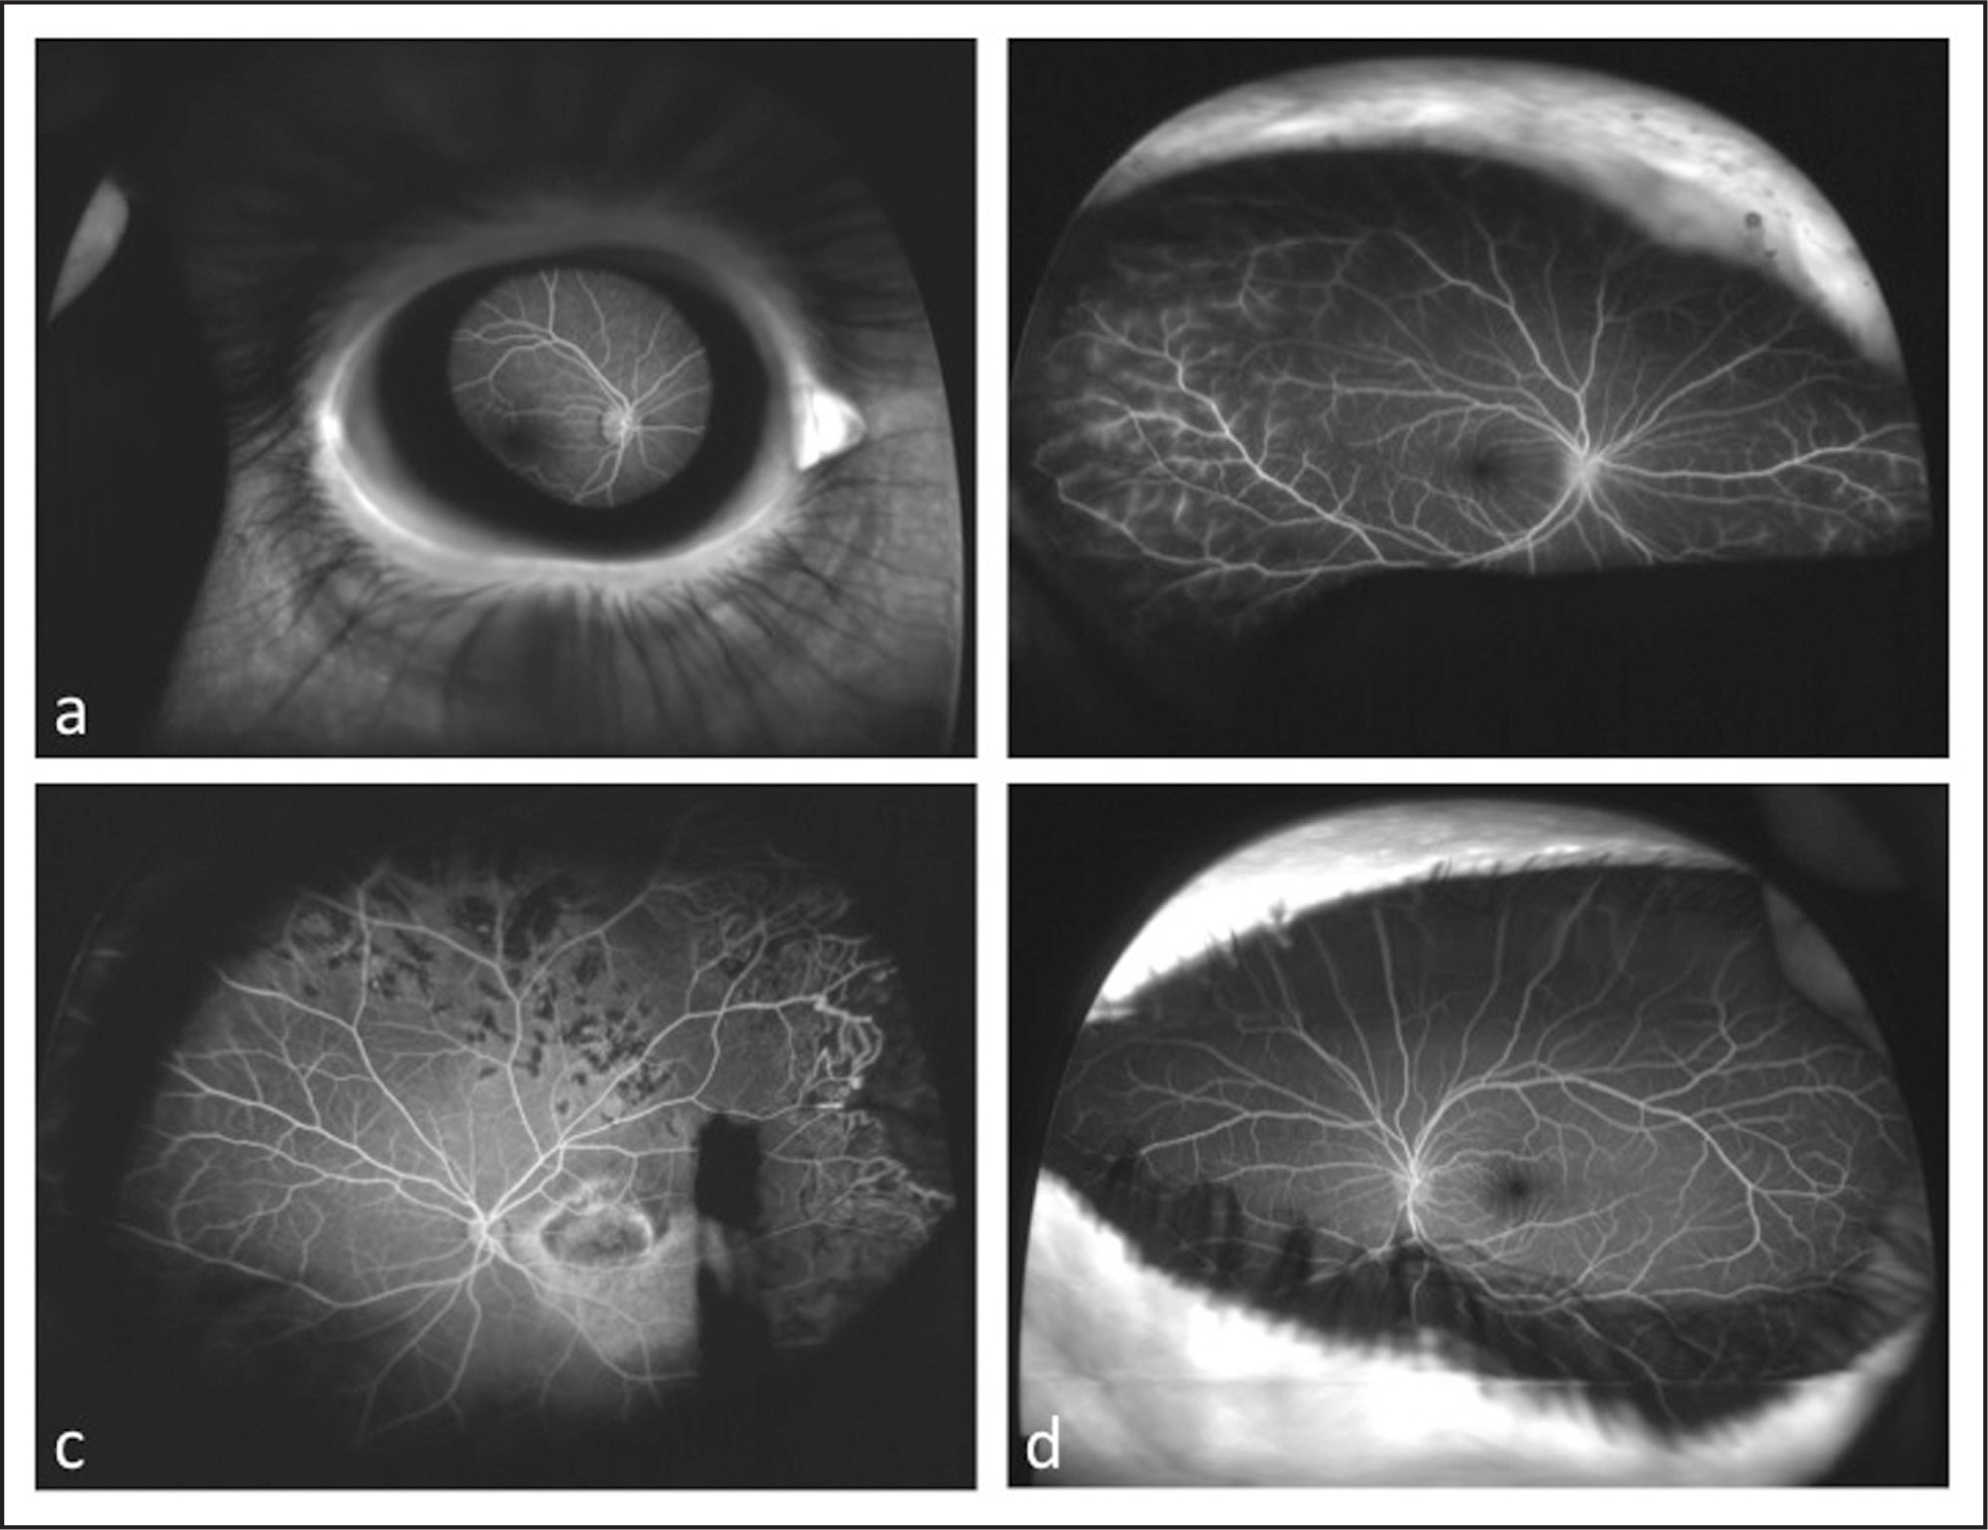 (A) Eyelash artifact in the inferonasal quadrant in patient 2. (B) Eyelid artifact with a normal angiogram in patient 8. (C) Anterior corneal scar with angiogram showing peripheral laser scars and non-perfusion in Coat's disease and (D) iris and eyelid artifact with a normal angiogram in the fellow eye in patient 7.